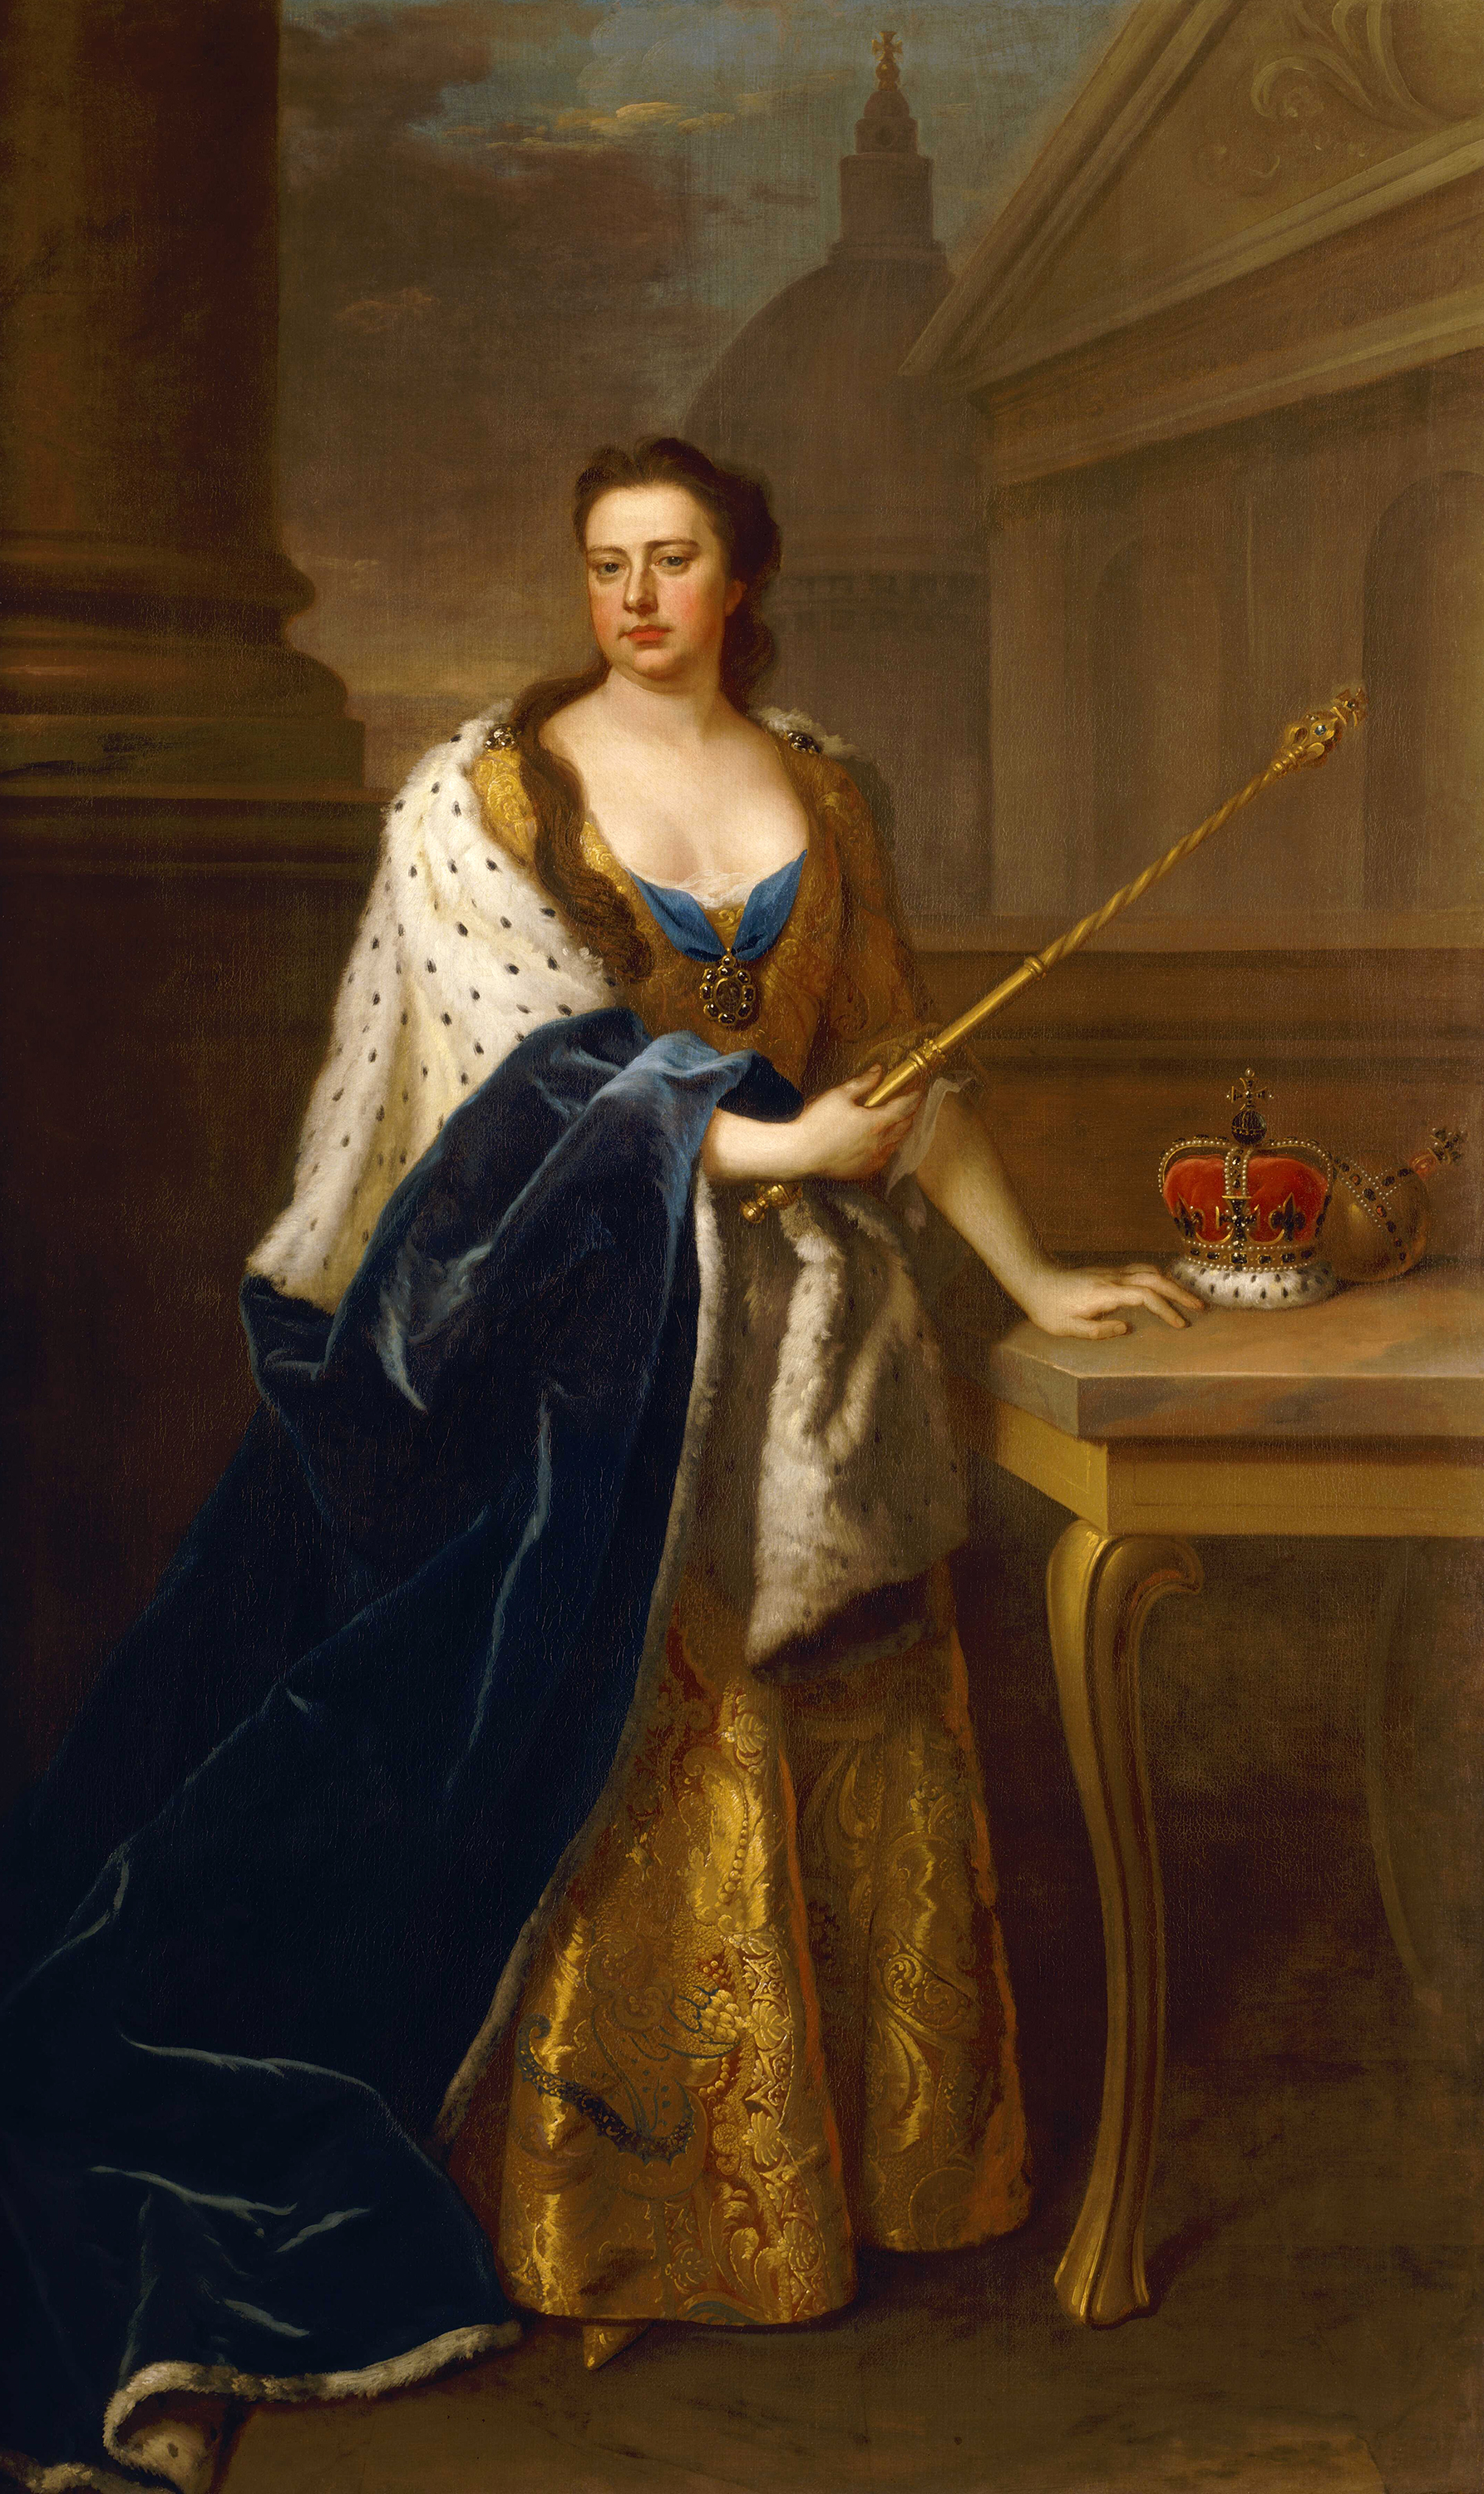 Portrait of Anne (1665-1714), Queen of England, Scotland and Ireland (1702-1707), Queen of Great Britain and Ireland (1707-1714), 1714 | Portraits of Kings